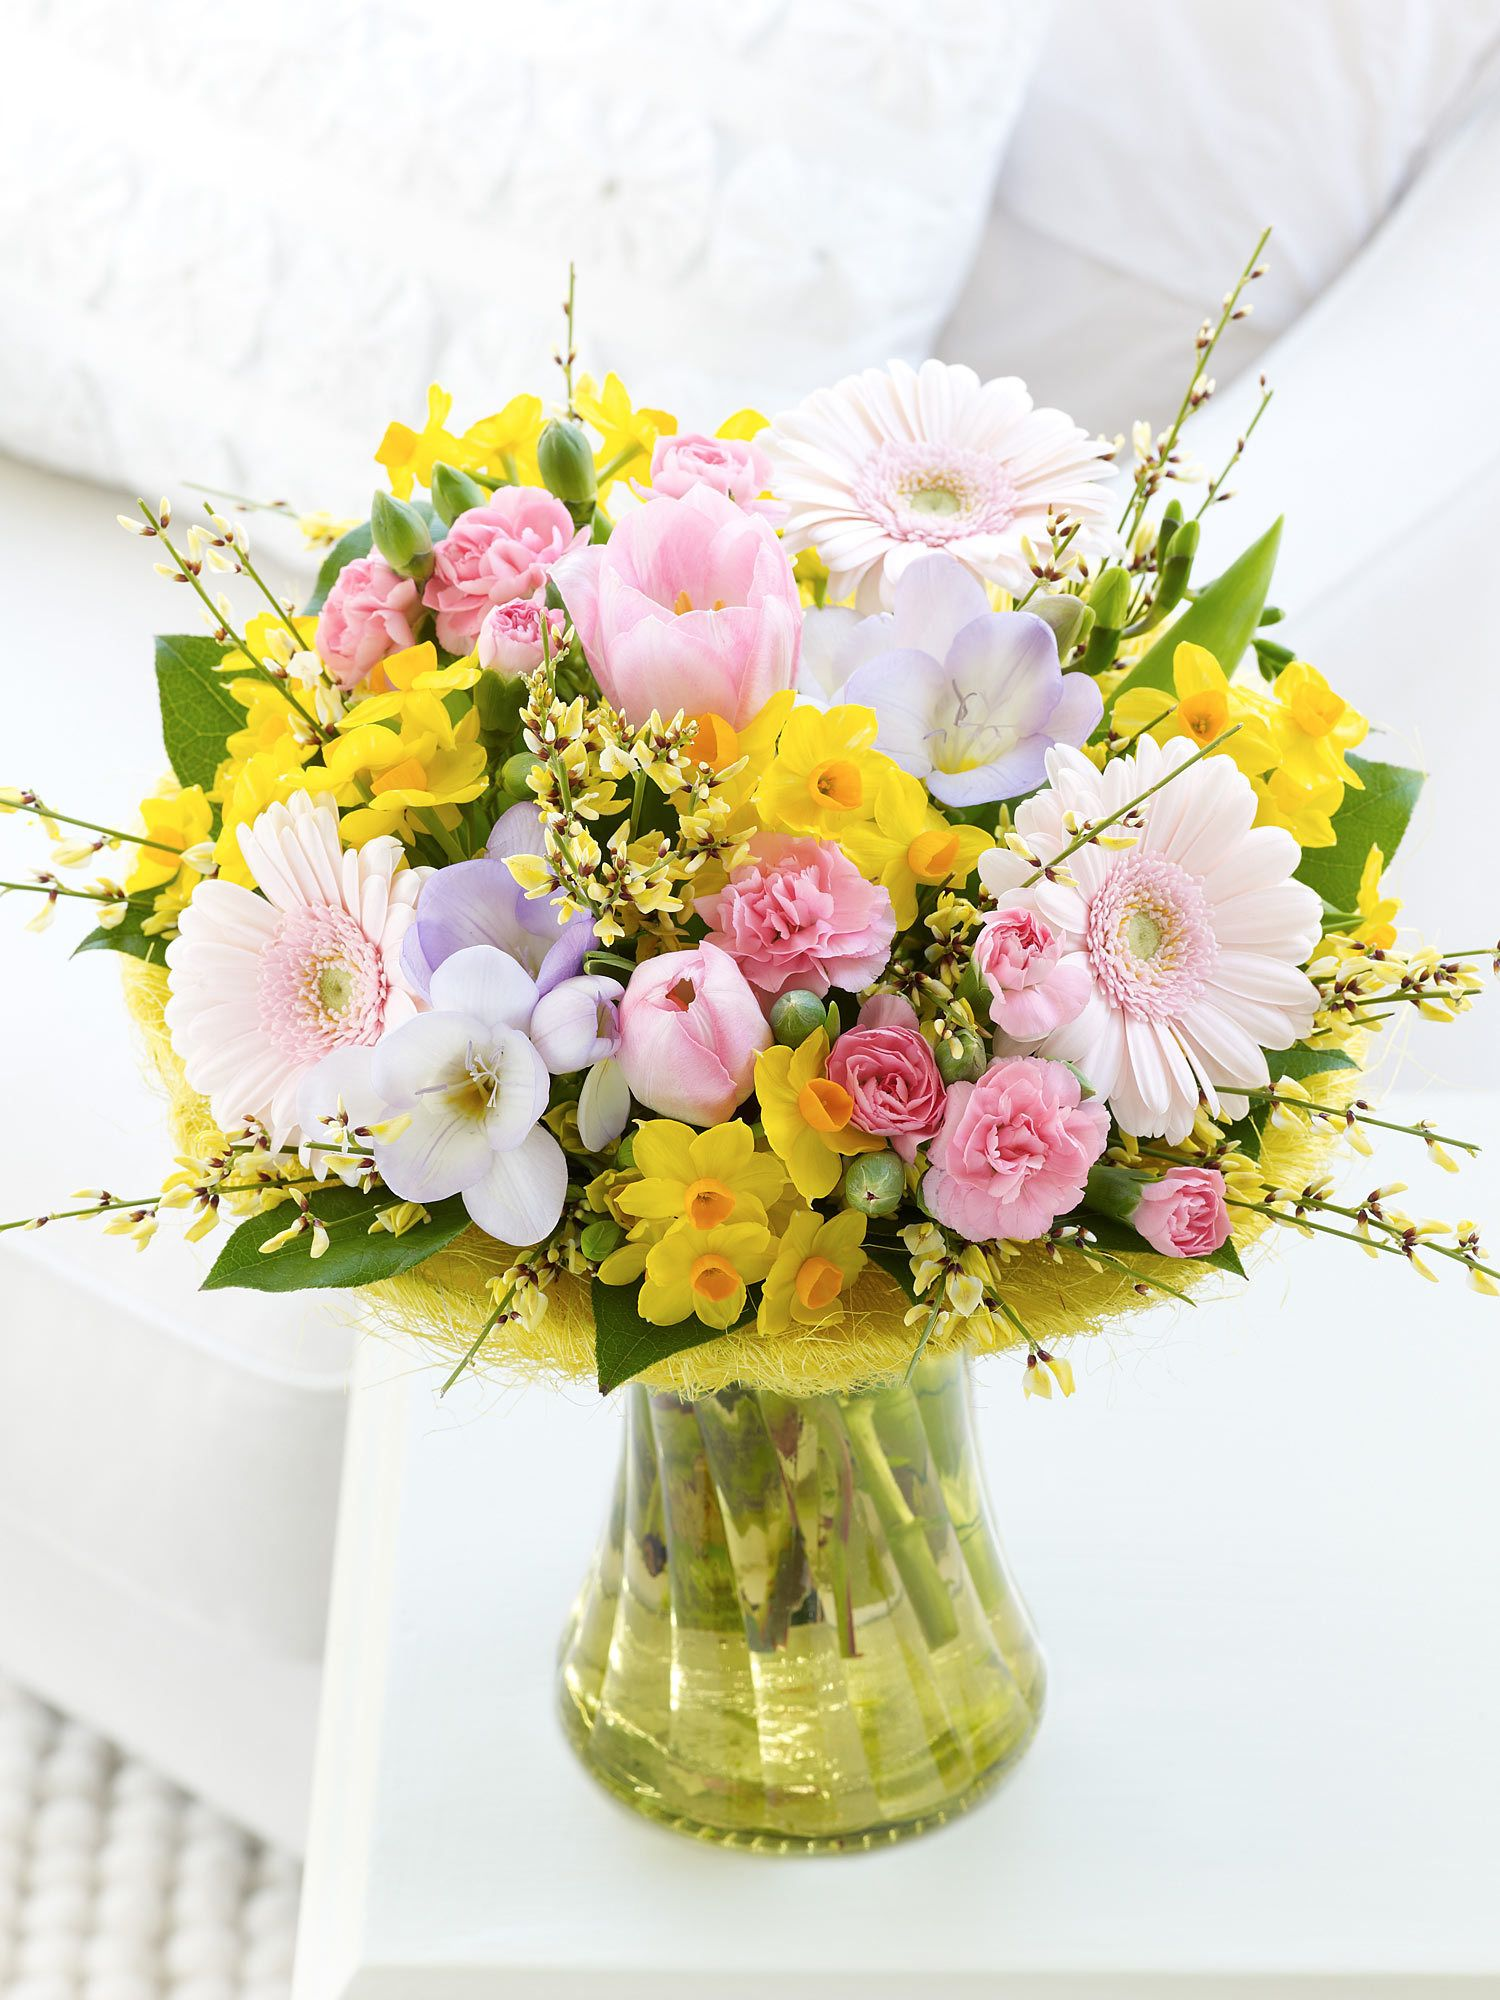 Scented Spring Perfect Gift Interflora My Favourite Interflora